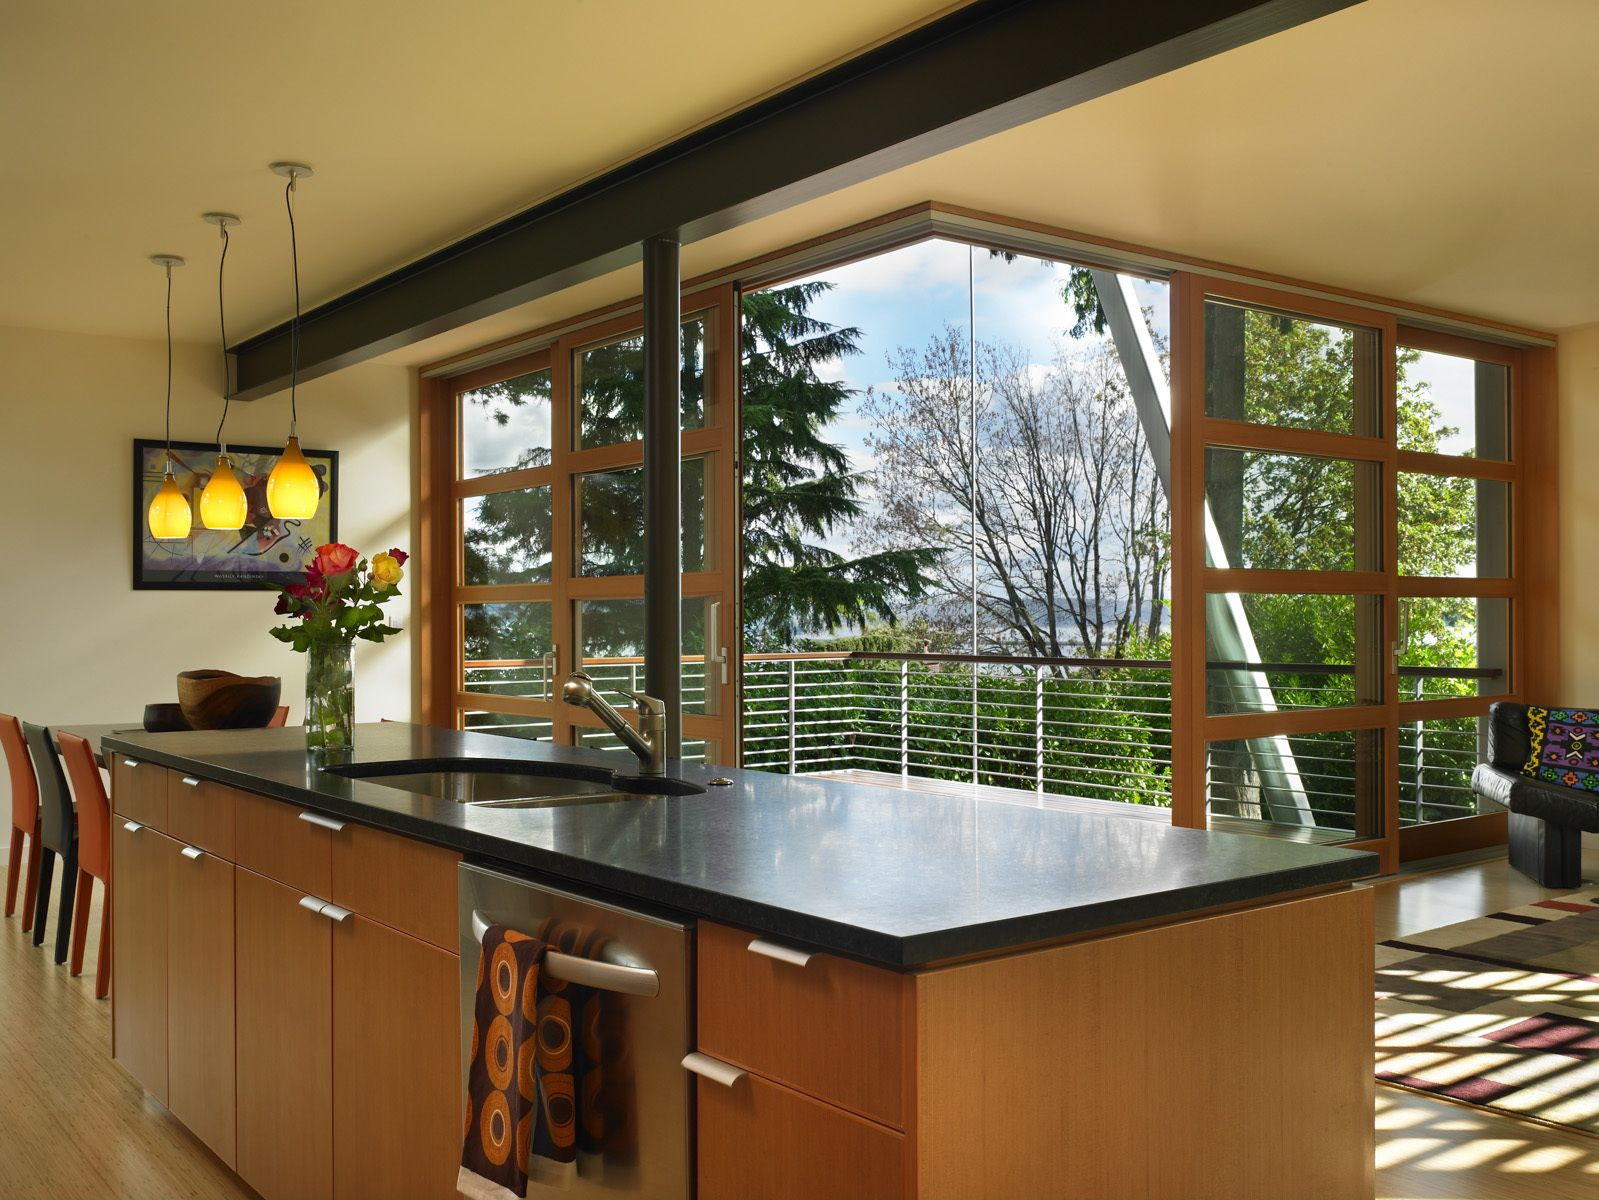 Fir lift & slide doors open the dining and living space to the covered deck thereby doubling the entertaining space.